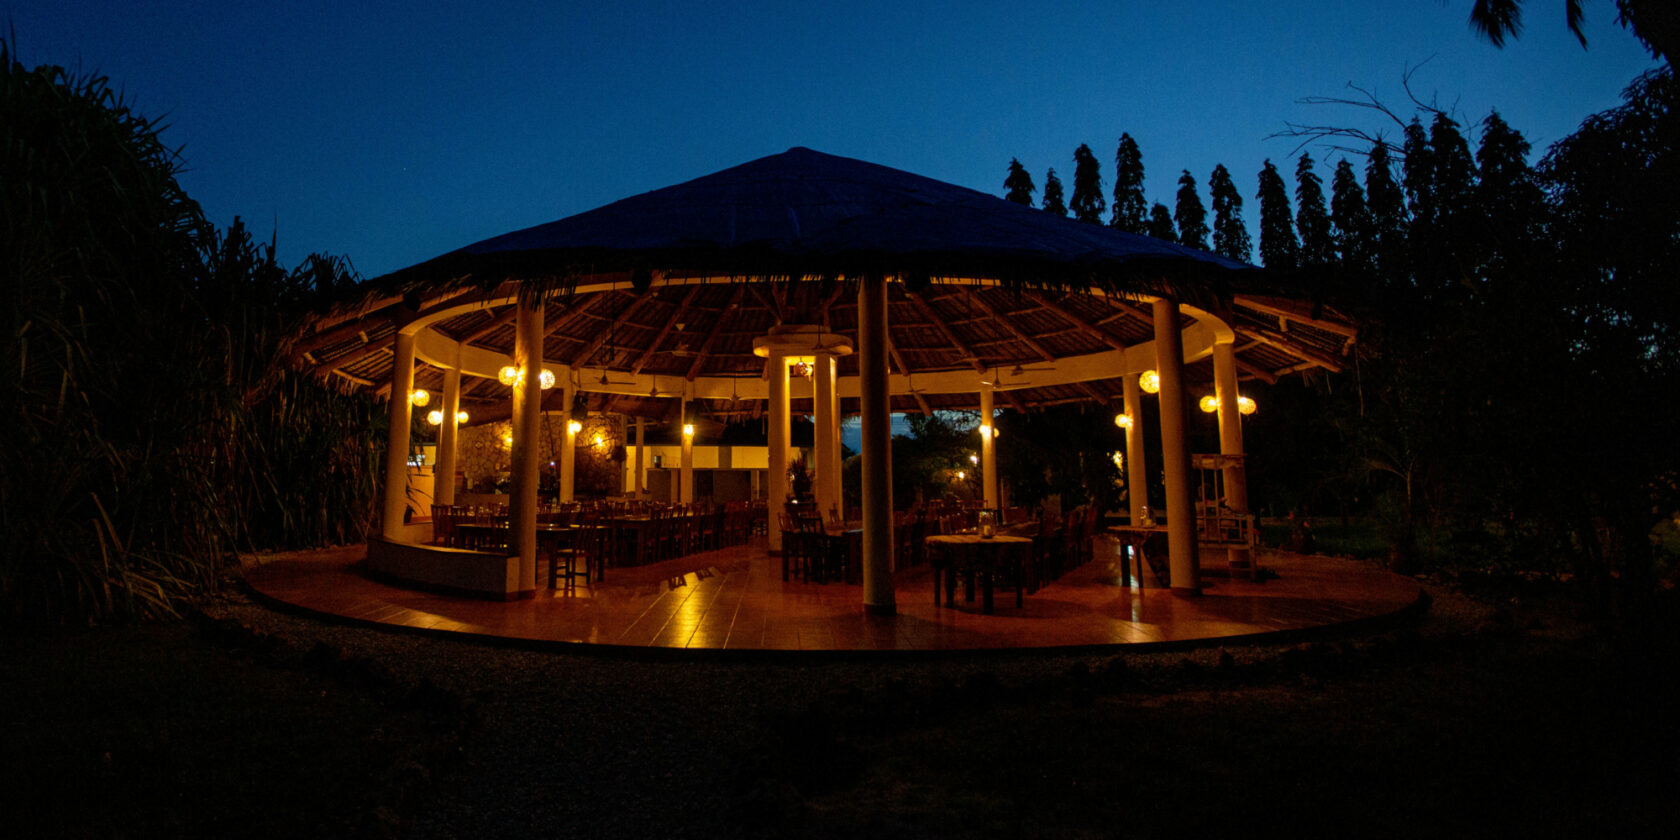 The makuti roof with the dining place beneath alit in the night